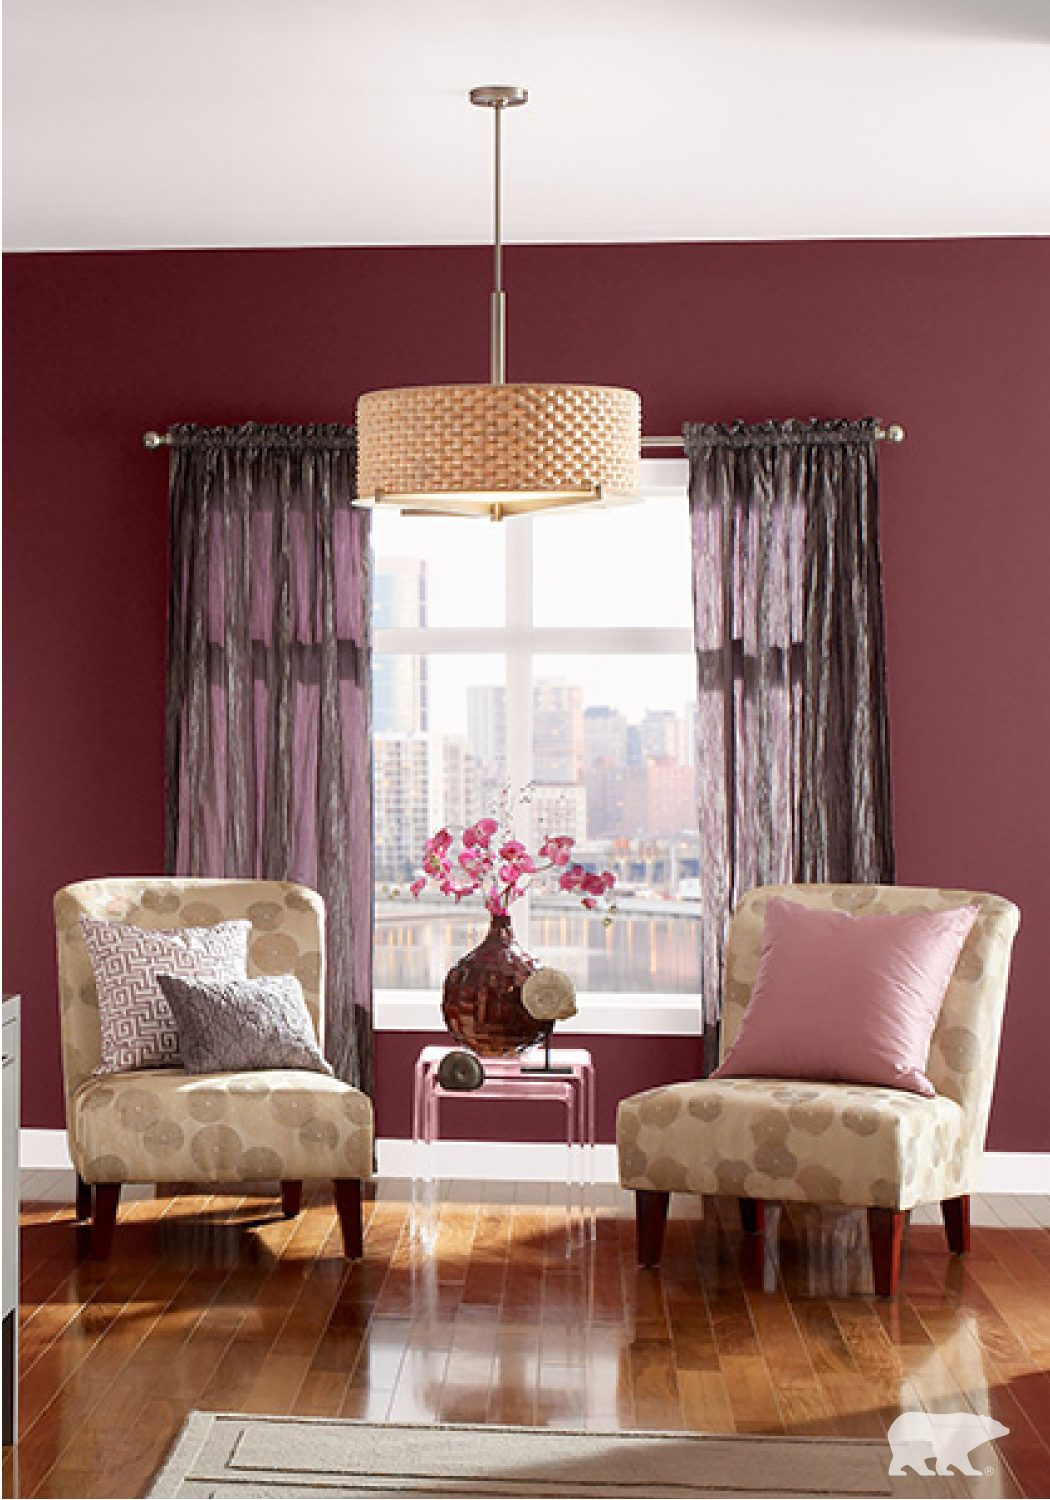 07431936405de4a67ecb7660e1f0cfeb 10 Ways to Add Glam to Your Hollywood Home